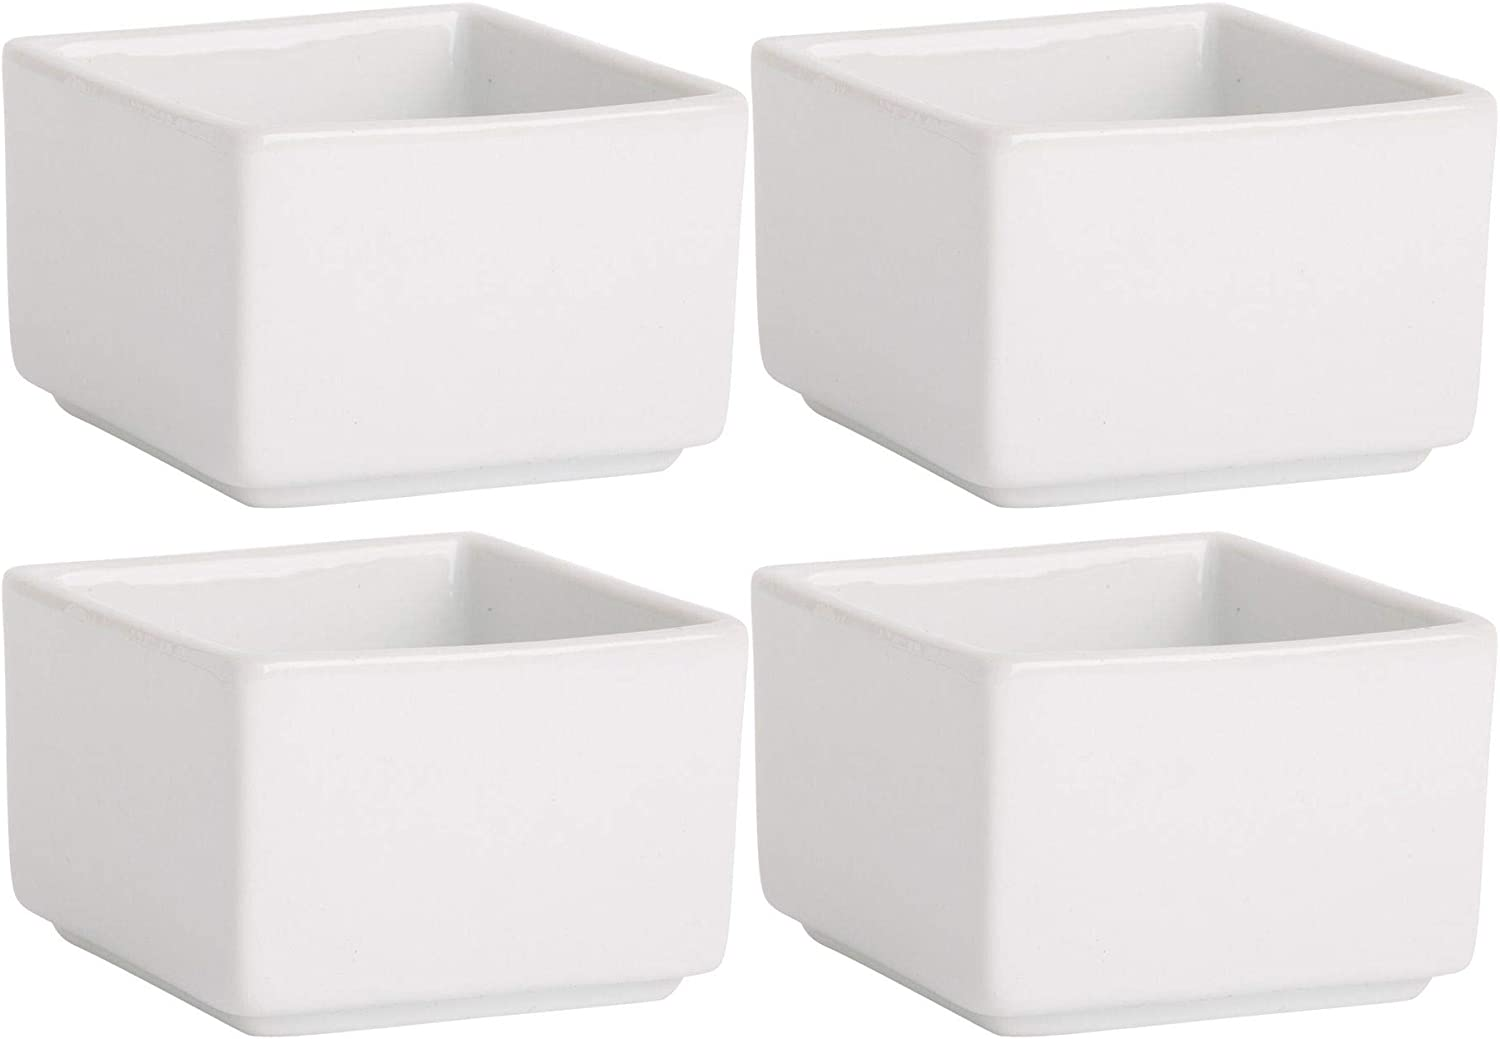 Home Essentials 15247 Fiddle and Fern Square Mini Taster Bowls, Set of 4, 4-inch Height, White